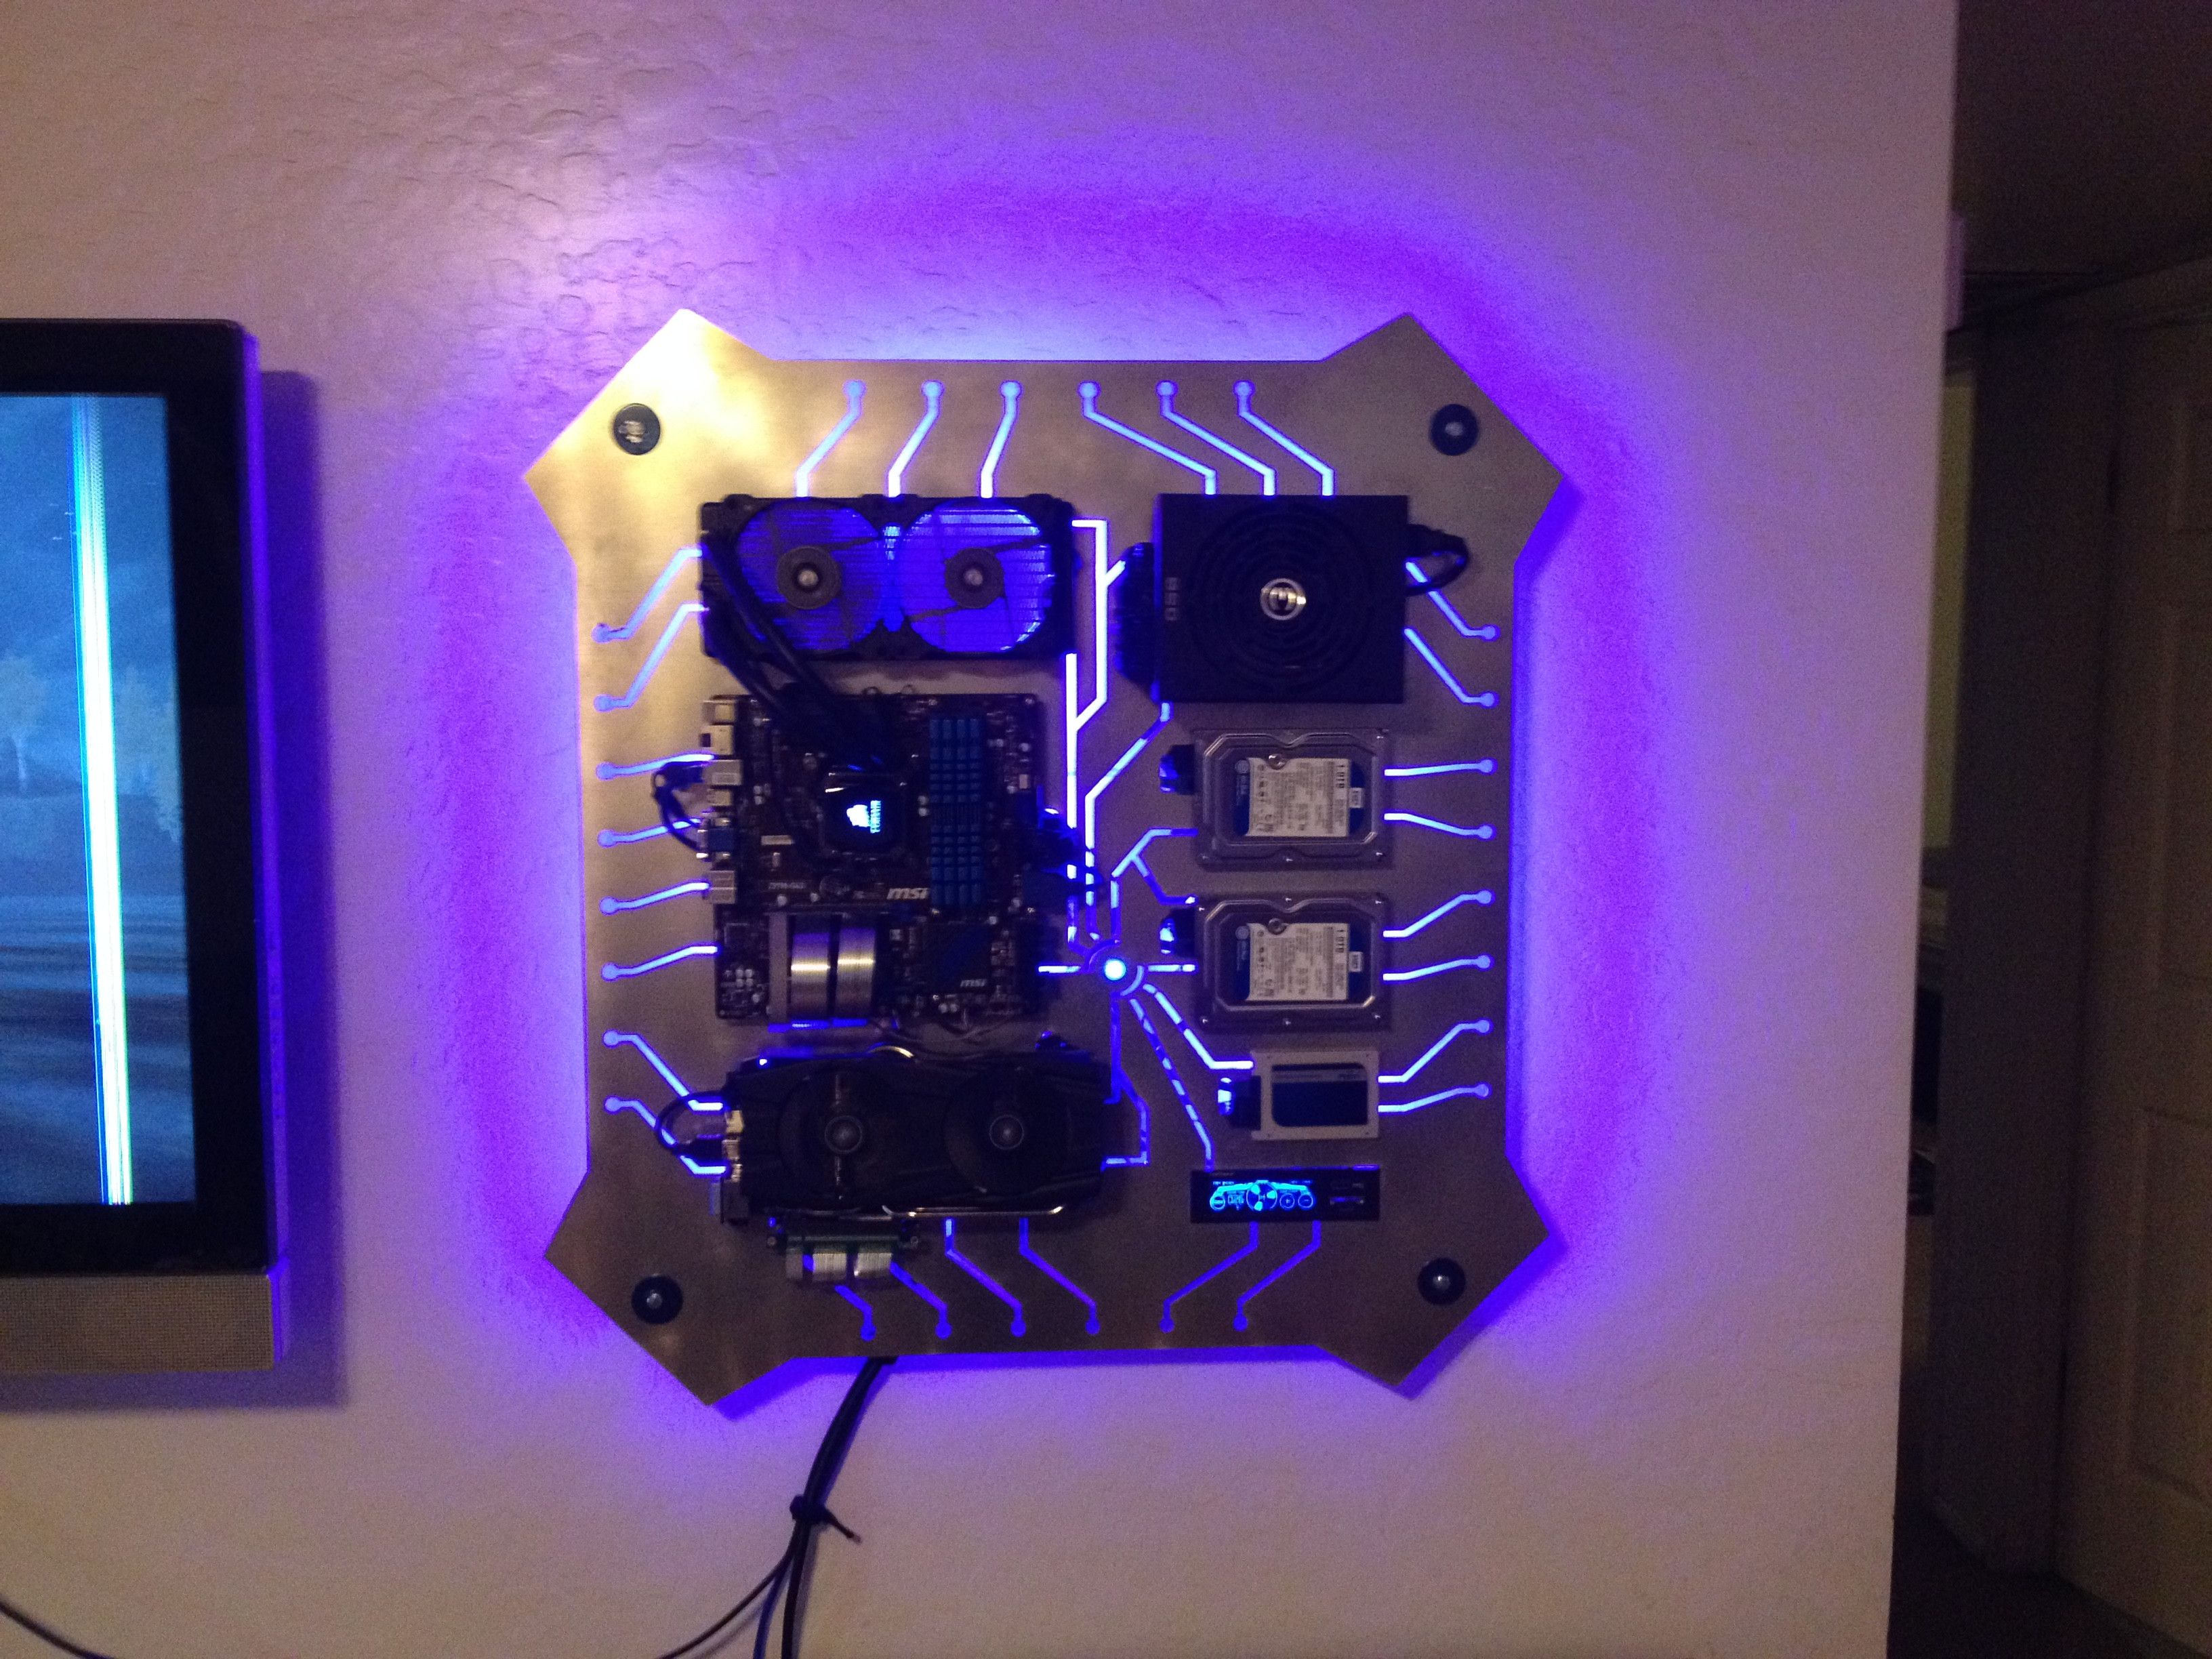 I Made A Custom Wall Mounted Pc For My So And I Want To